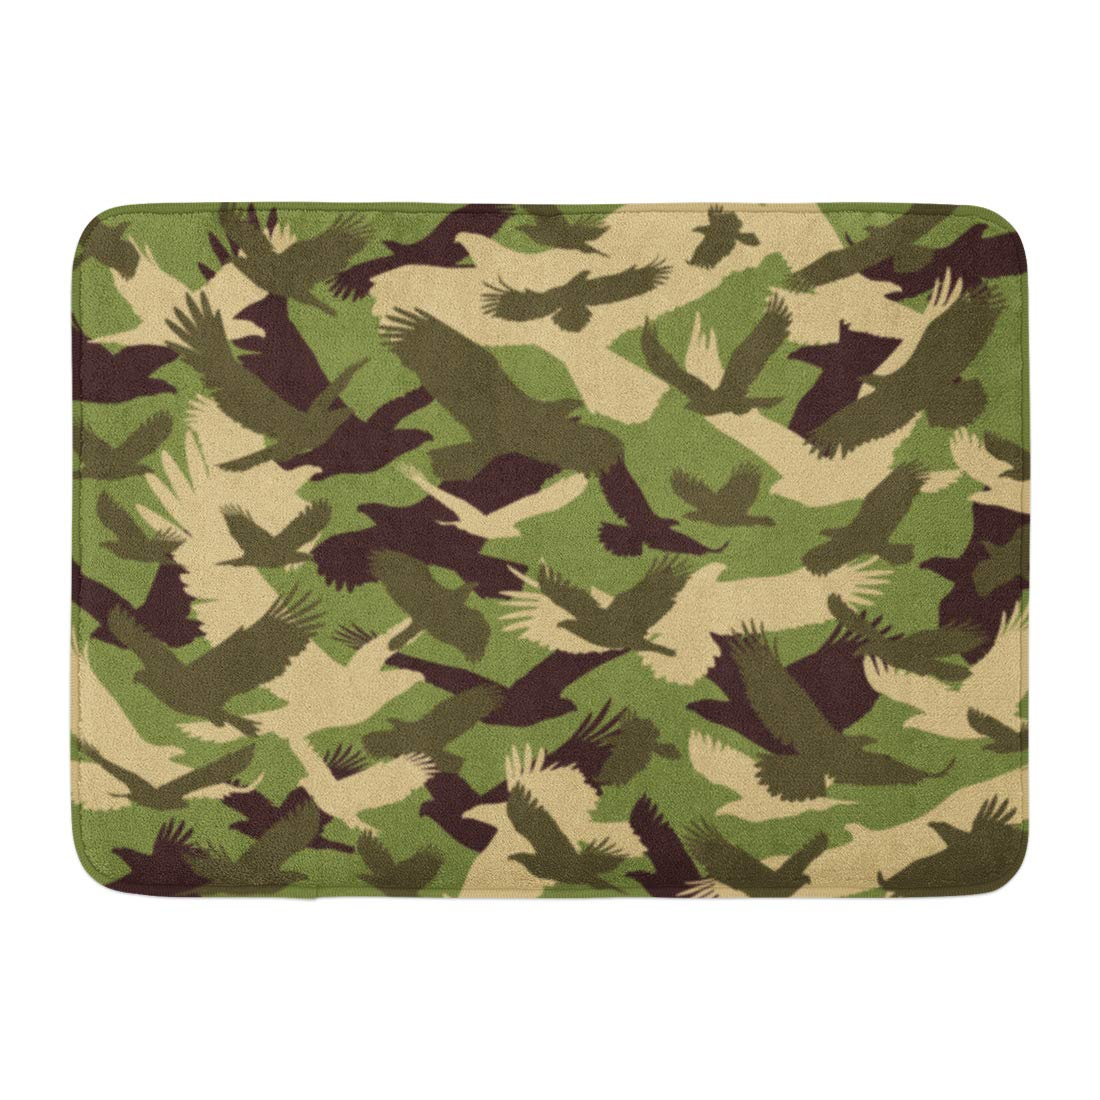 Camo Bathroom Rugs: GODPOK Green Eagle White Bird Camouflage Orange Abstract